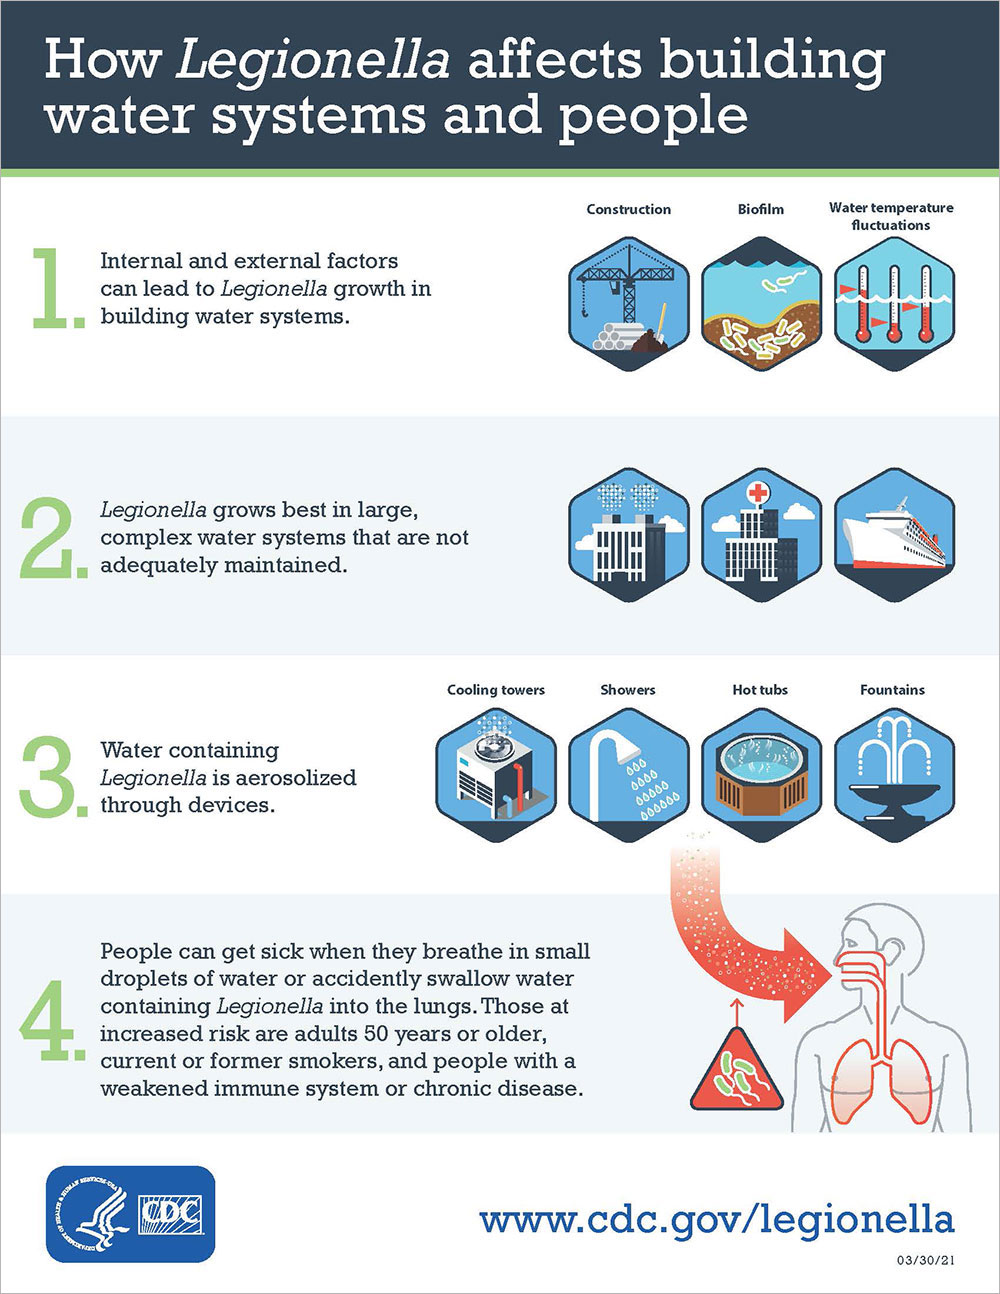 How Legionella Affects Building Water Systems and People